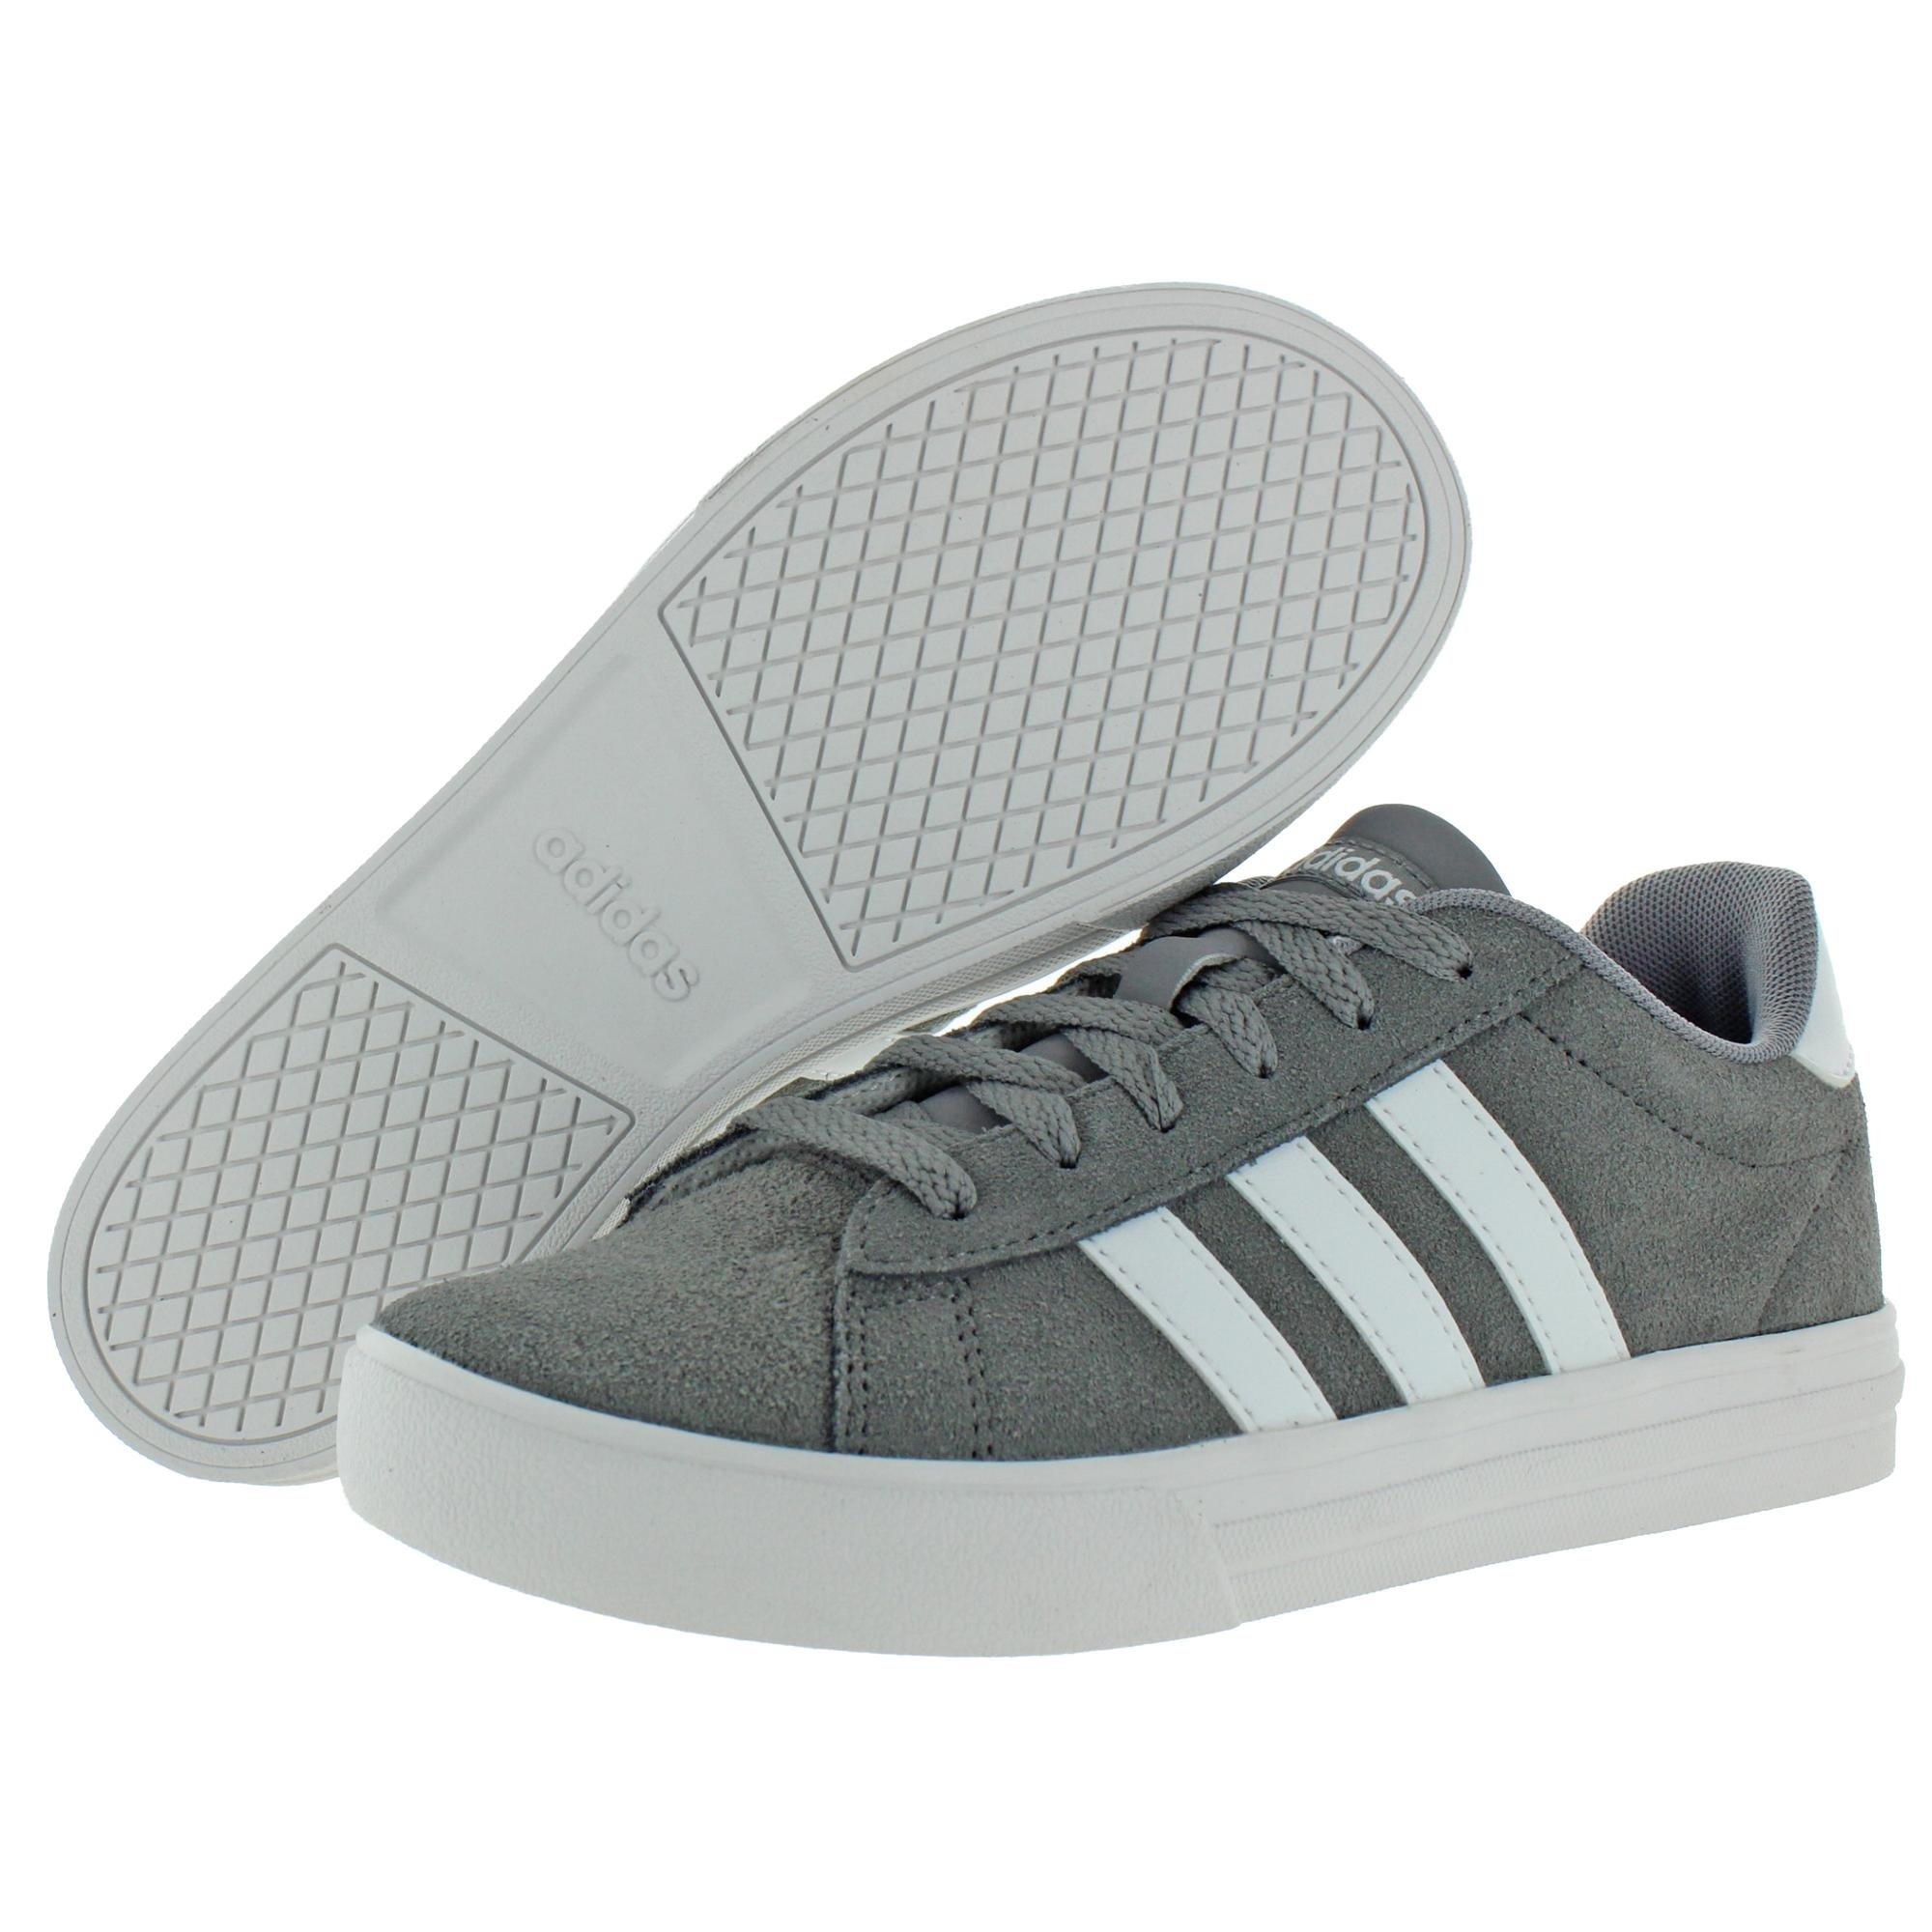 Adidas Girls Daily 2.0 K Skate Shoes Suede Athleisure - Grey/White